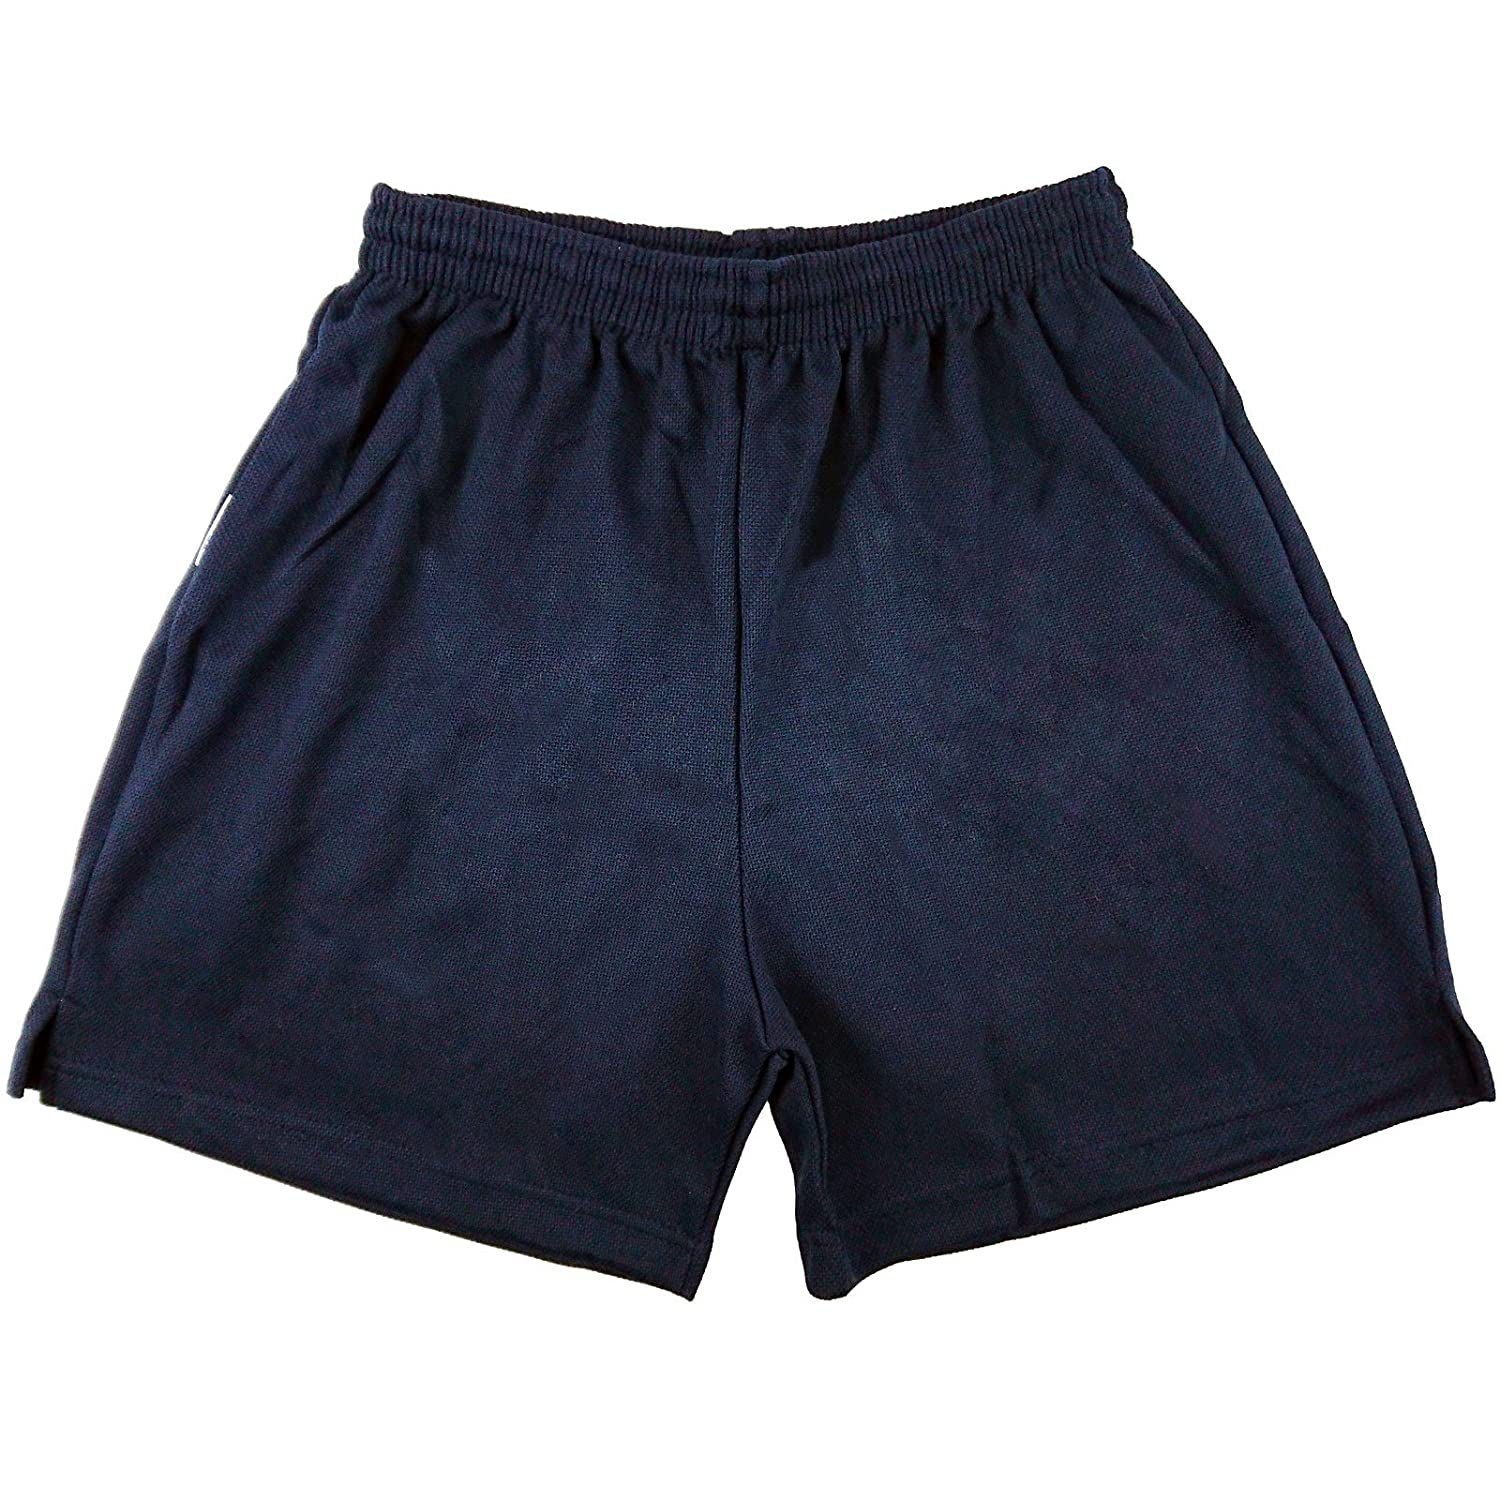 Mens Boys Girls Unisex Mesh Shorts Gym Shorts Sports Football Games PE Shorts School PE Shorts Navy